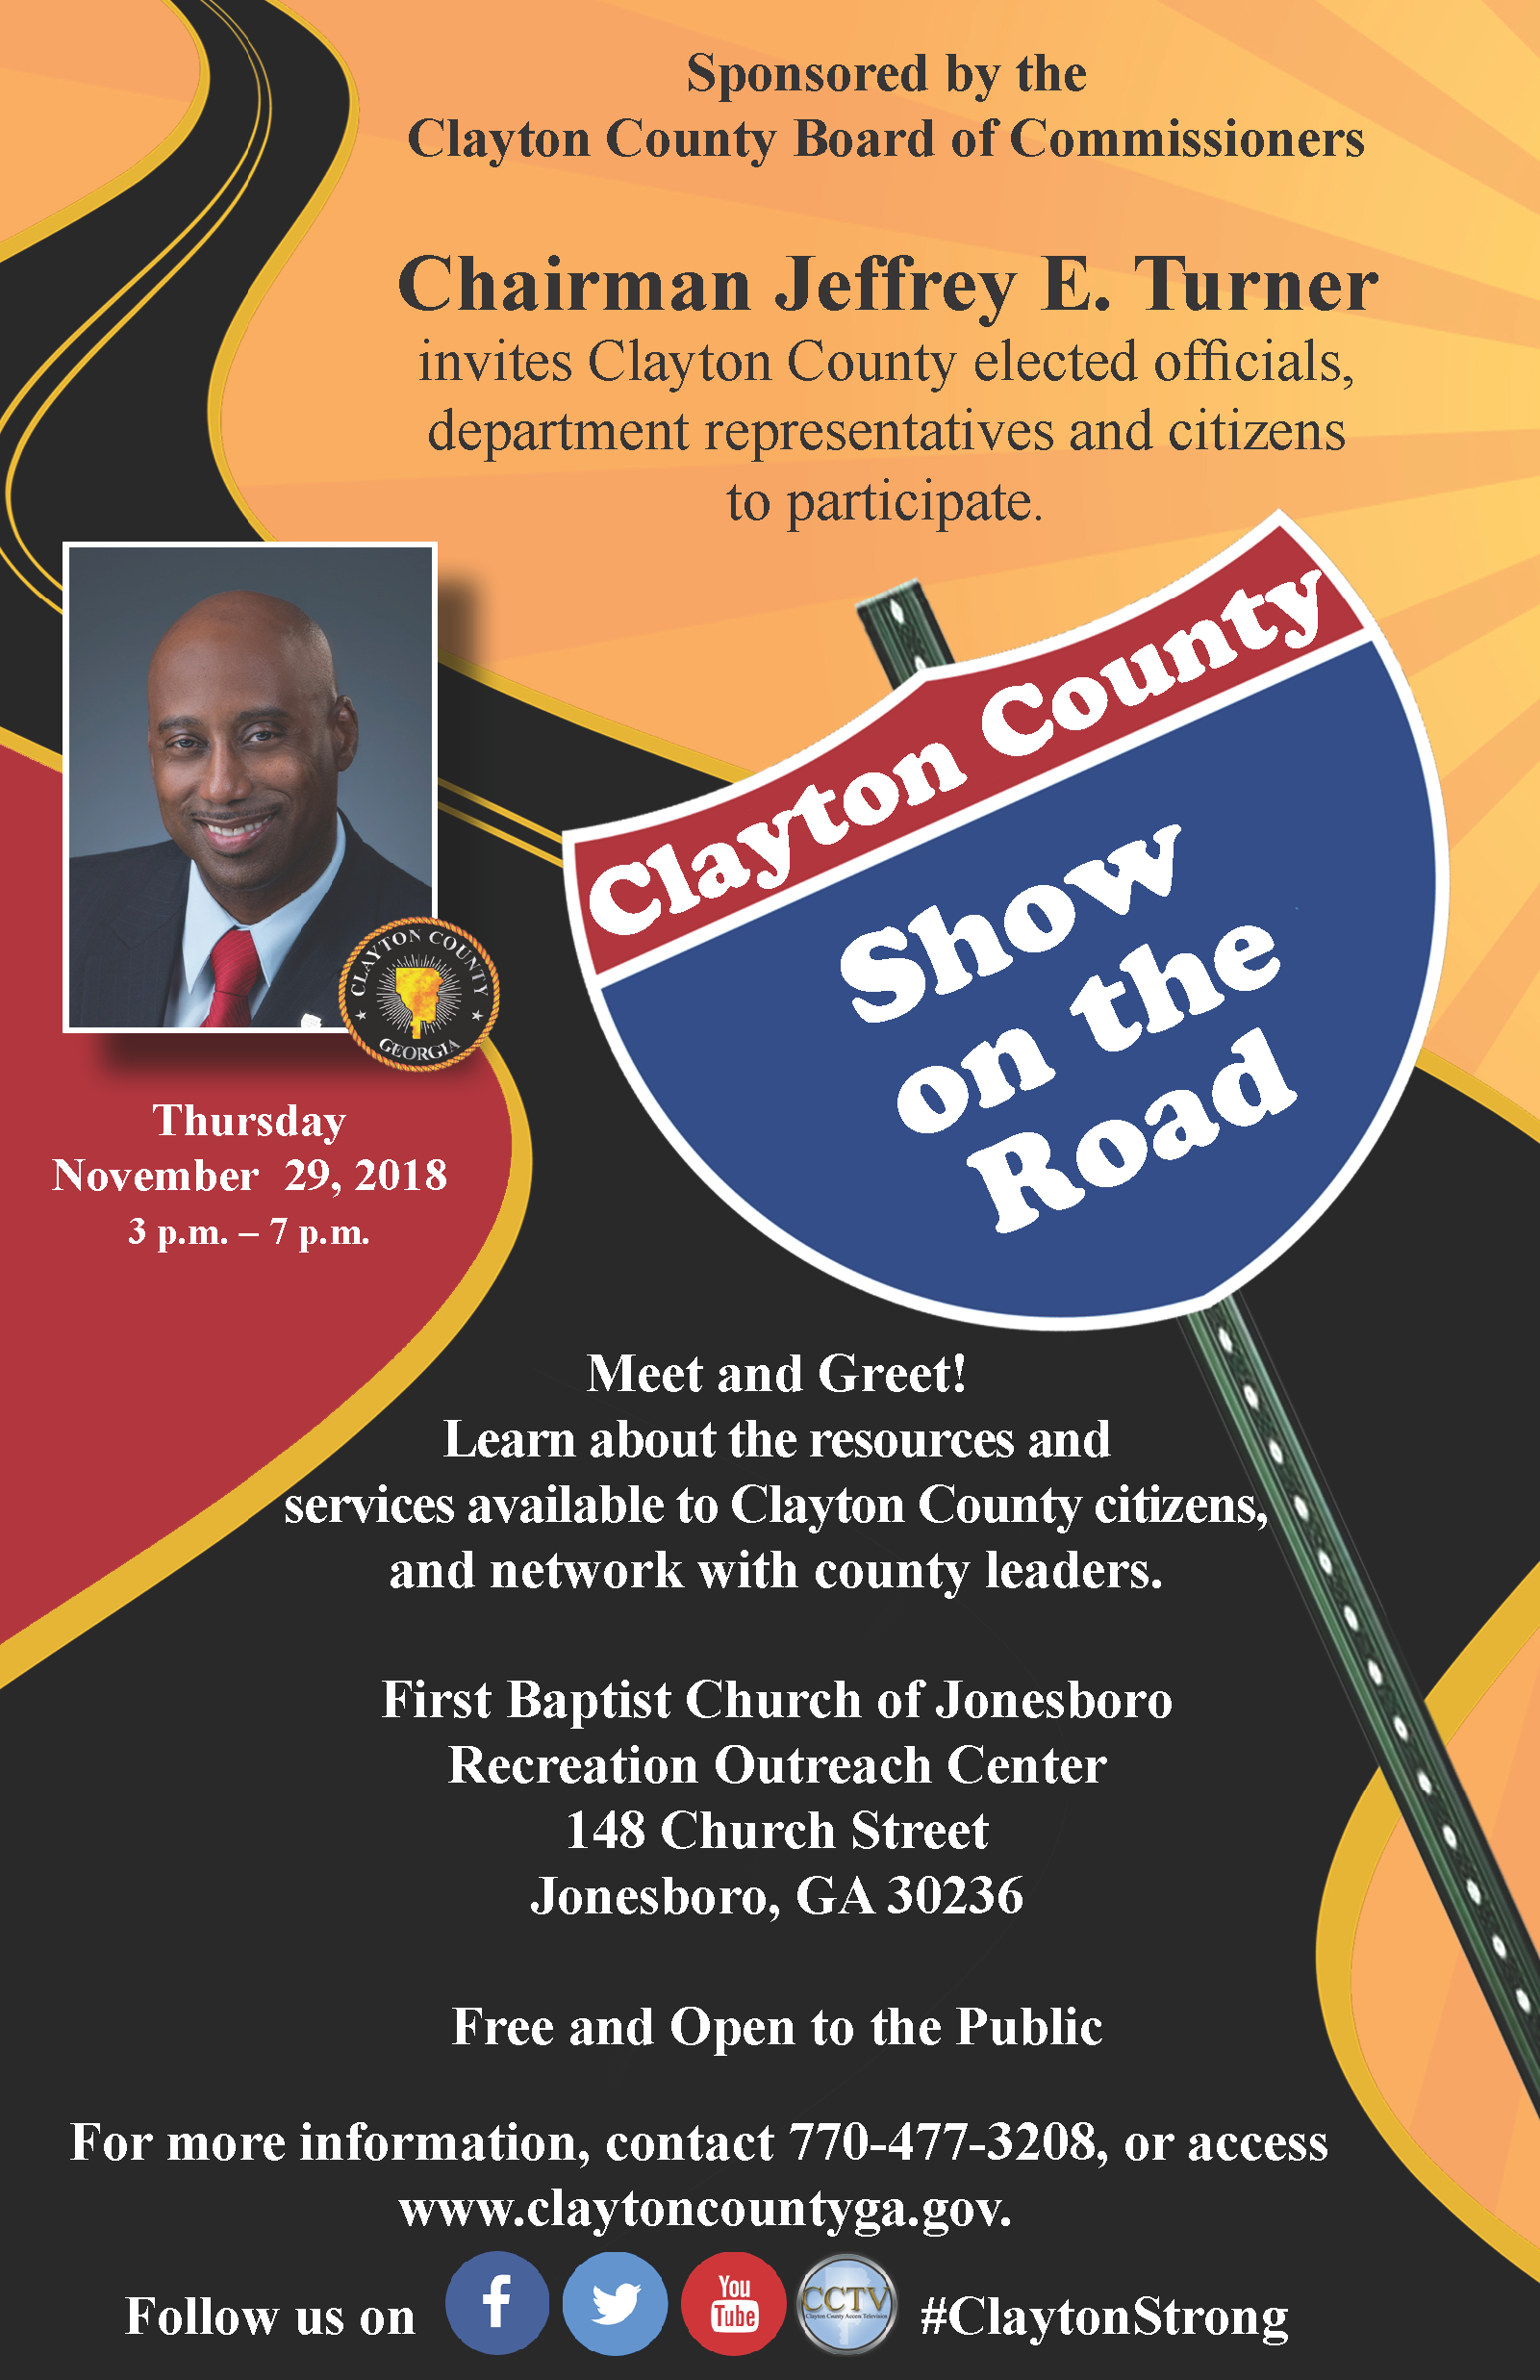 Interested in learning about resources and services available to Clayton County citizens while networking with county leaders? Here's your chance! Mark your calendars for the Show on the Road event Nov. 29th 3p.m.-7p.m. Okay everyone, let's get this Show on the Road! #ClaytonStrong